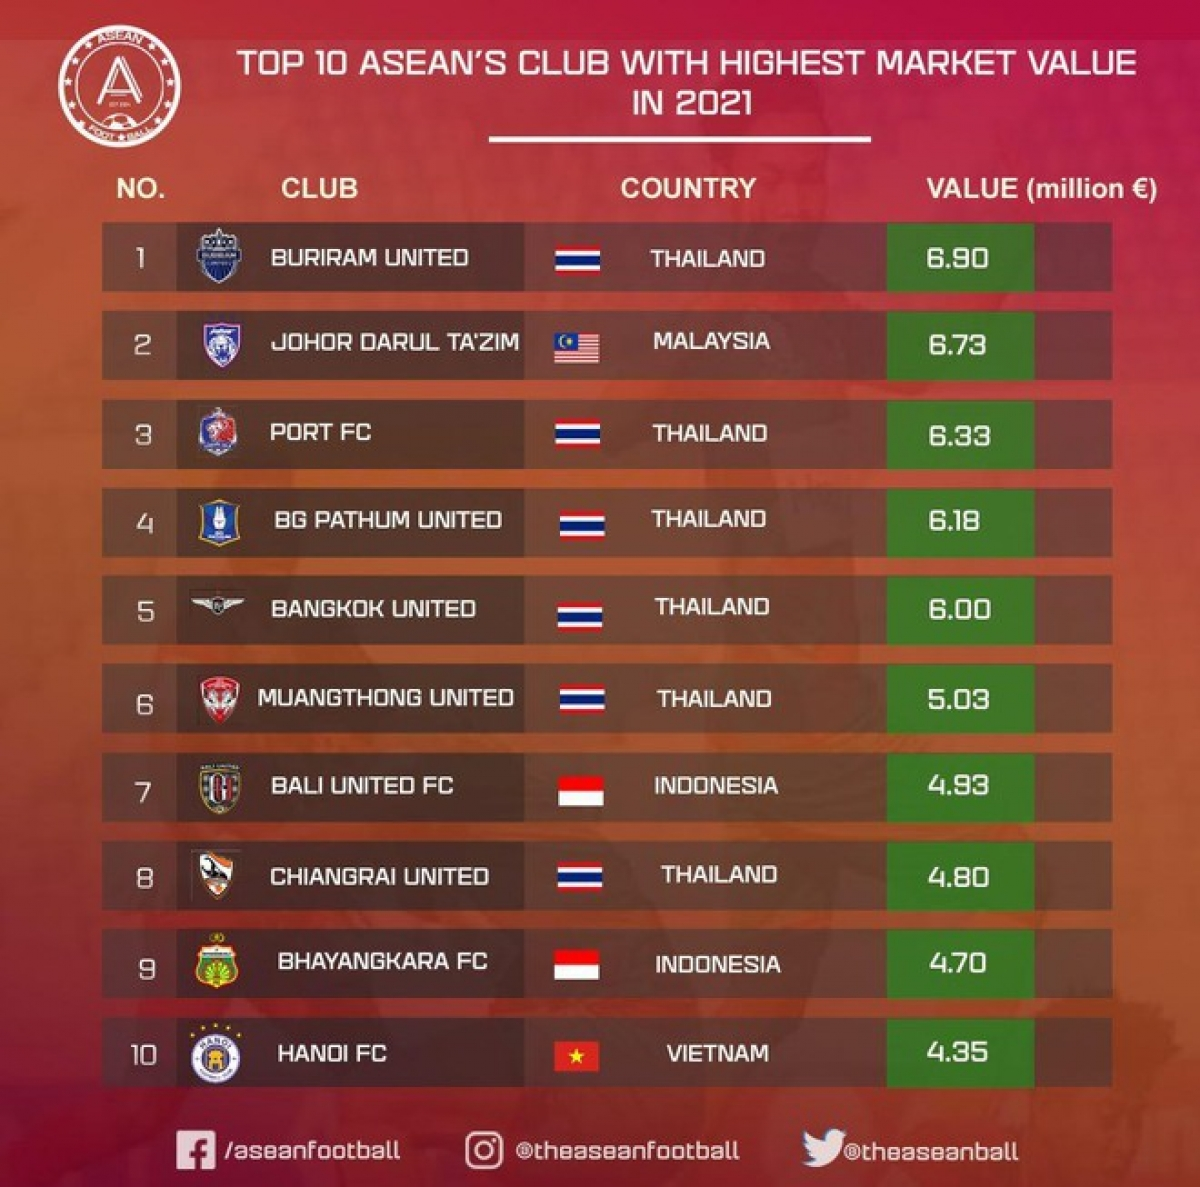 List of top 10 ASEAN clubs with highest market value